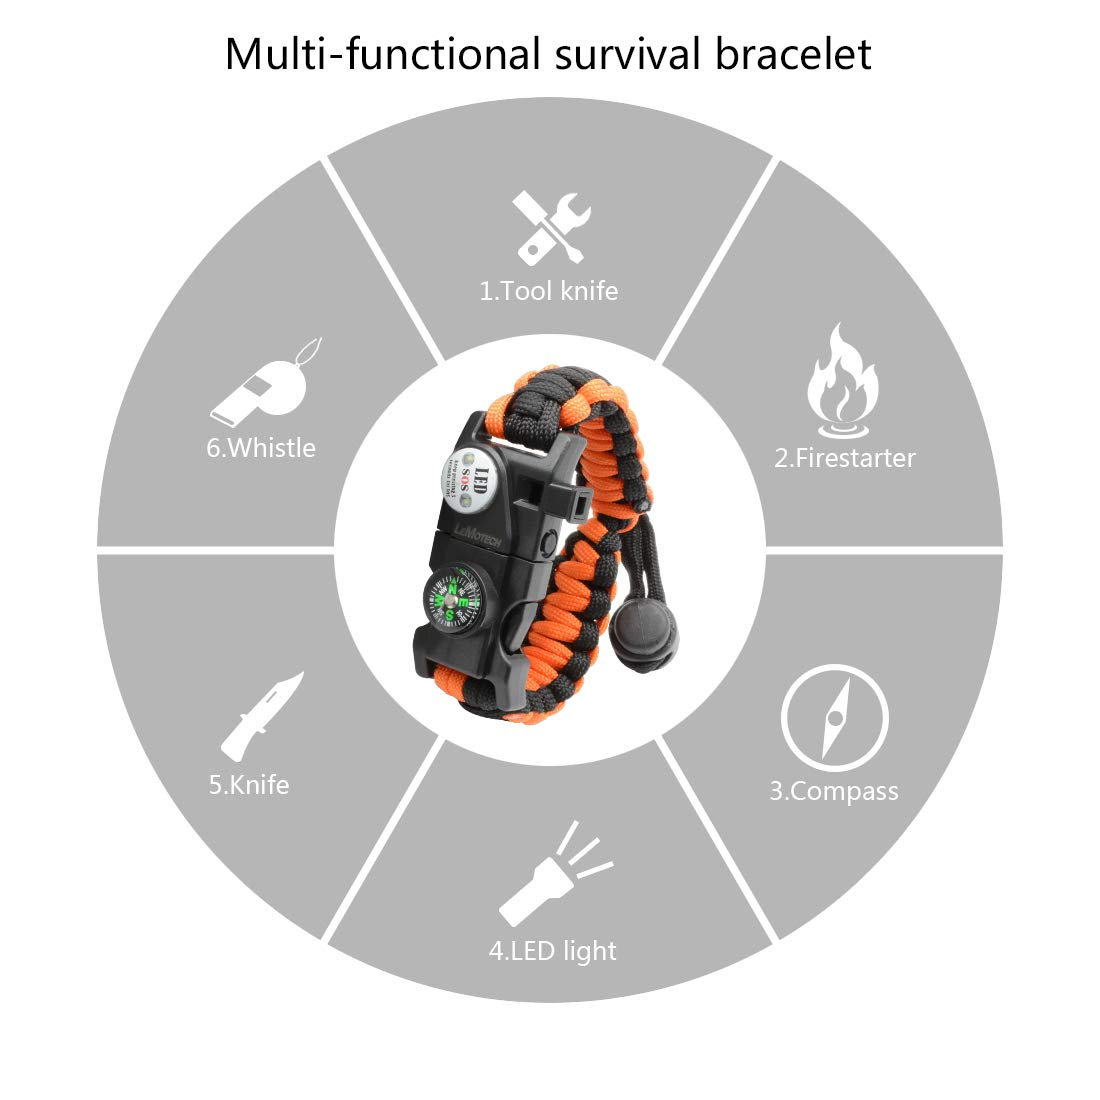 LeMotech Survival Bracelet, 20 in 1 Adjustable Survival Paracord Bracelet, Survival Gear Kit with Compass, Rescue Whistle, Fire Starter for Hiking, Camping and Hunting - 2 Pack by LeMotech (Image #4)